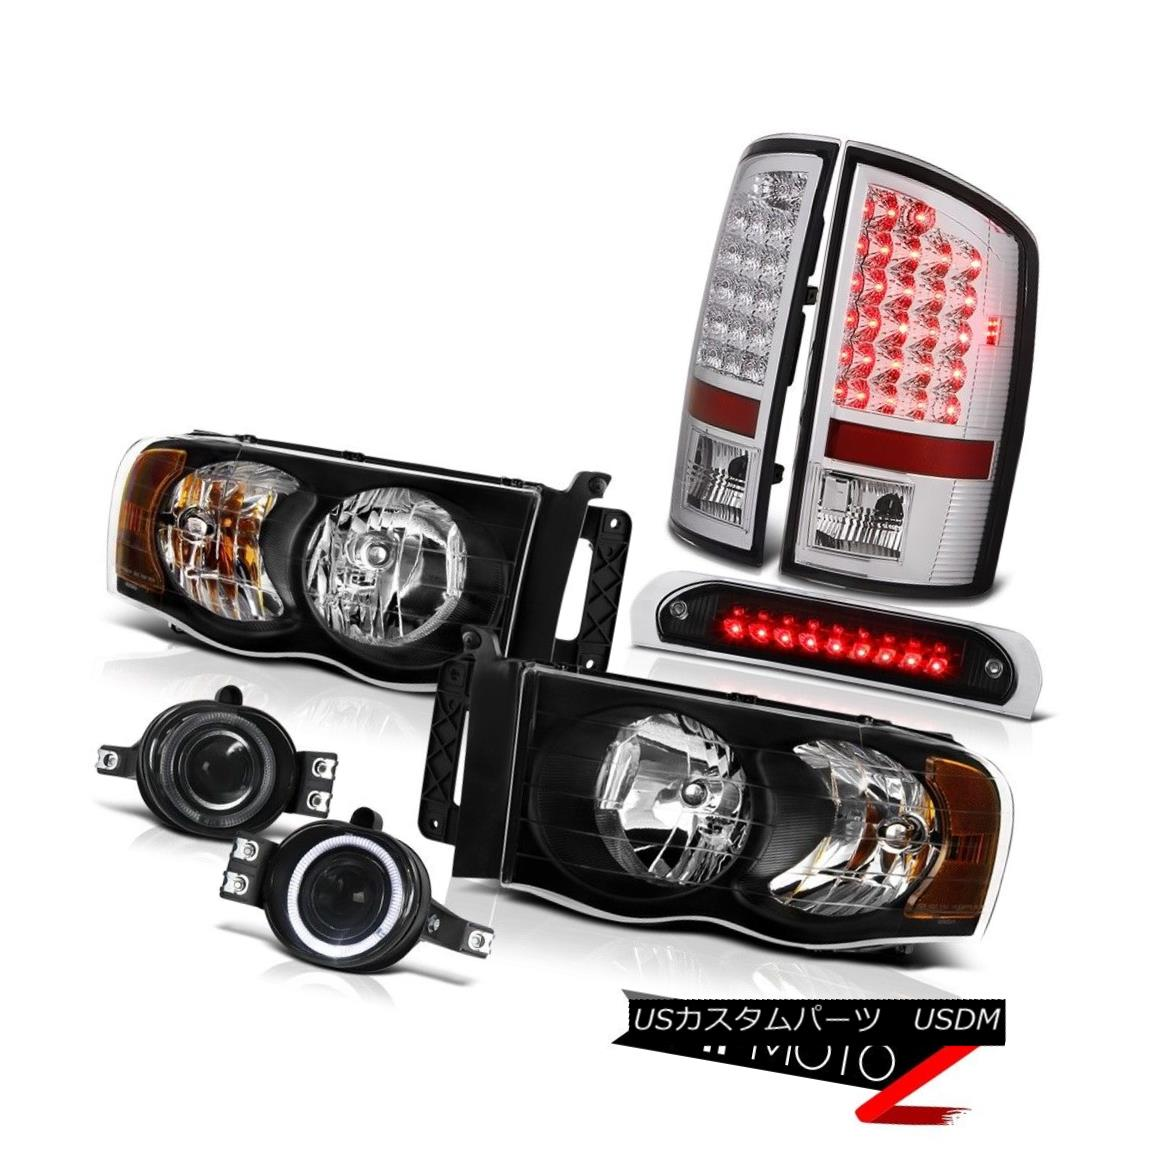 テールライト Inky Black Headlights SMD Rear Tail Lights Tinted Fog Brake LED 02-05 Ram 2500 Inky BlackヘッドライトSMDリアテールライトTinted FogブレーキLED 02-05 Ram 2500